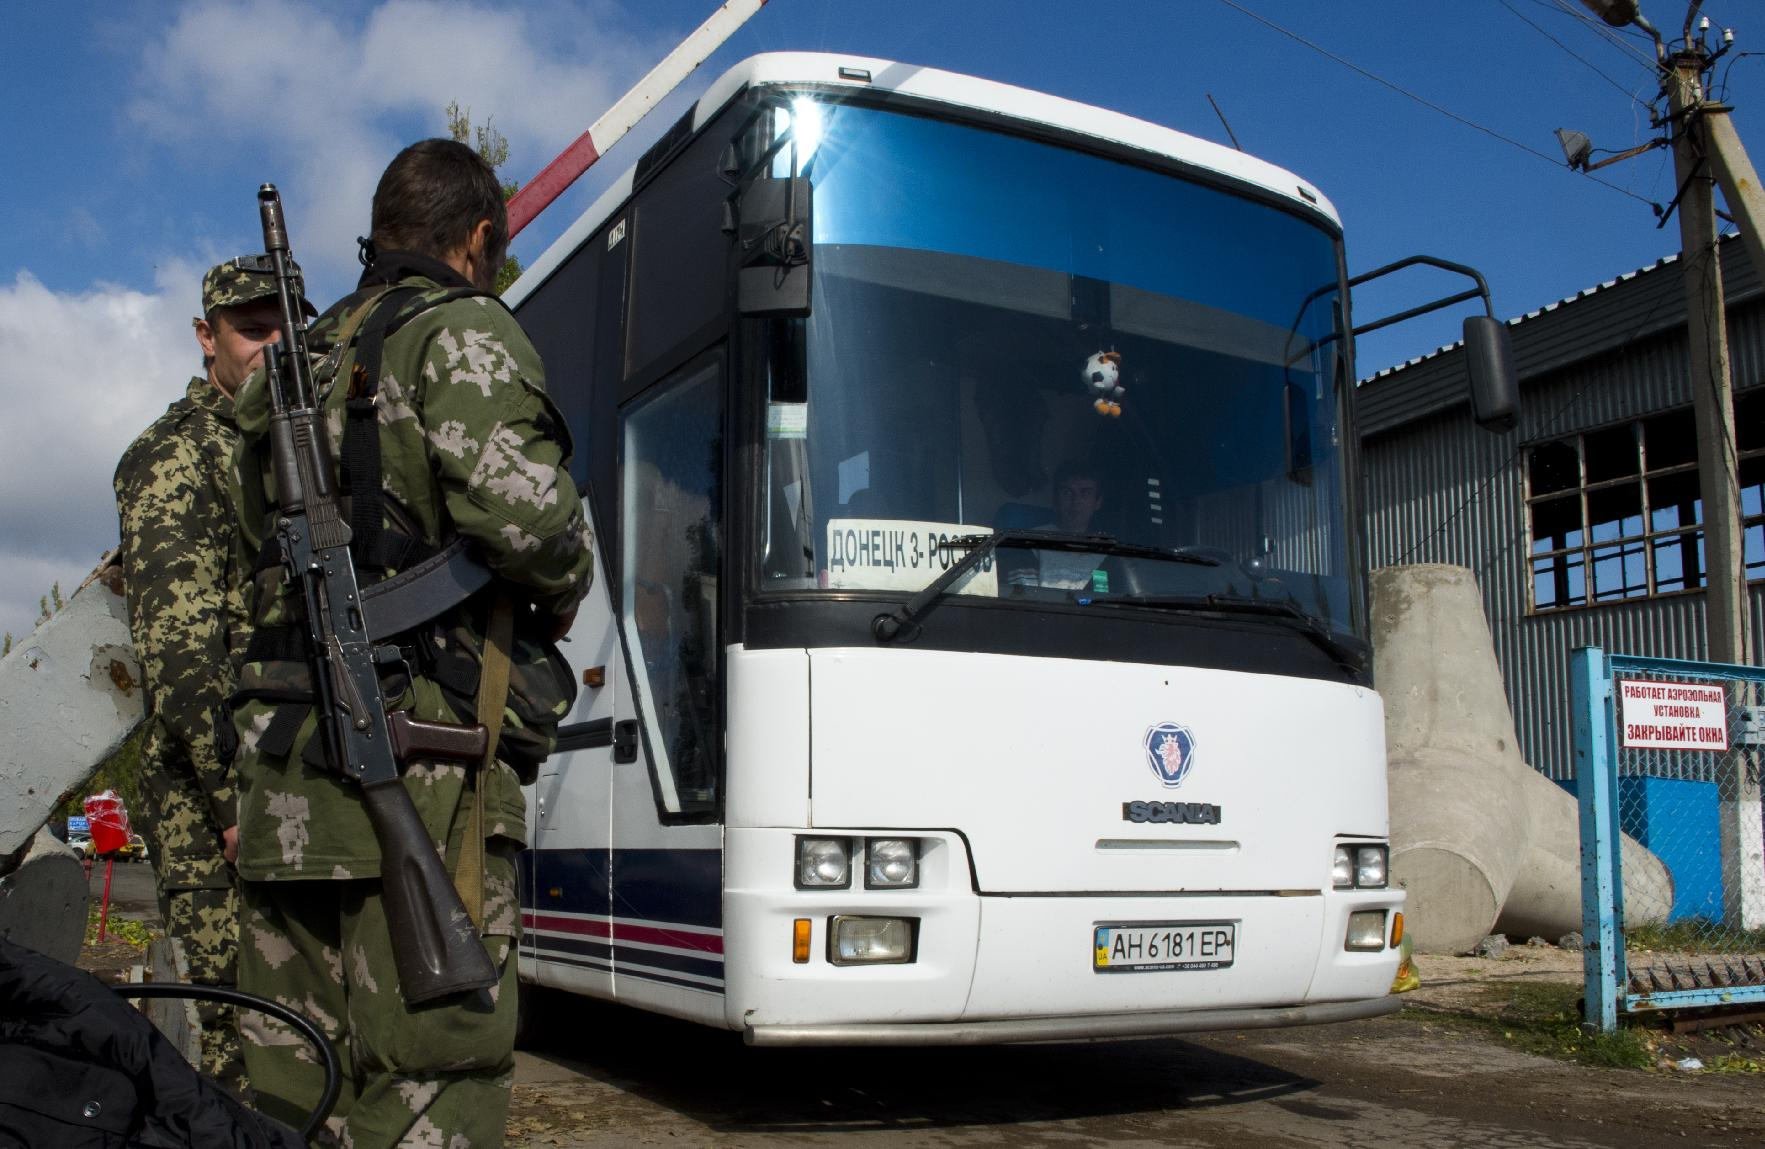 Pro-Russian separatist border guards let a bus crossing from Ukraine to Russia at the Uspenka border post, on September 26, 2014.